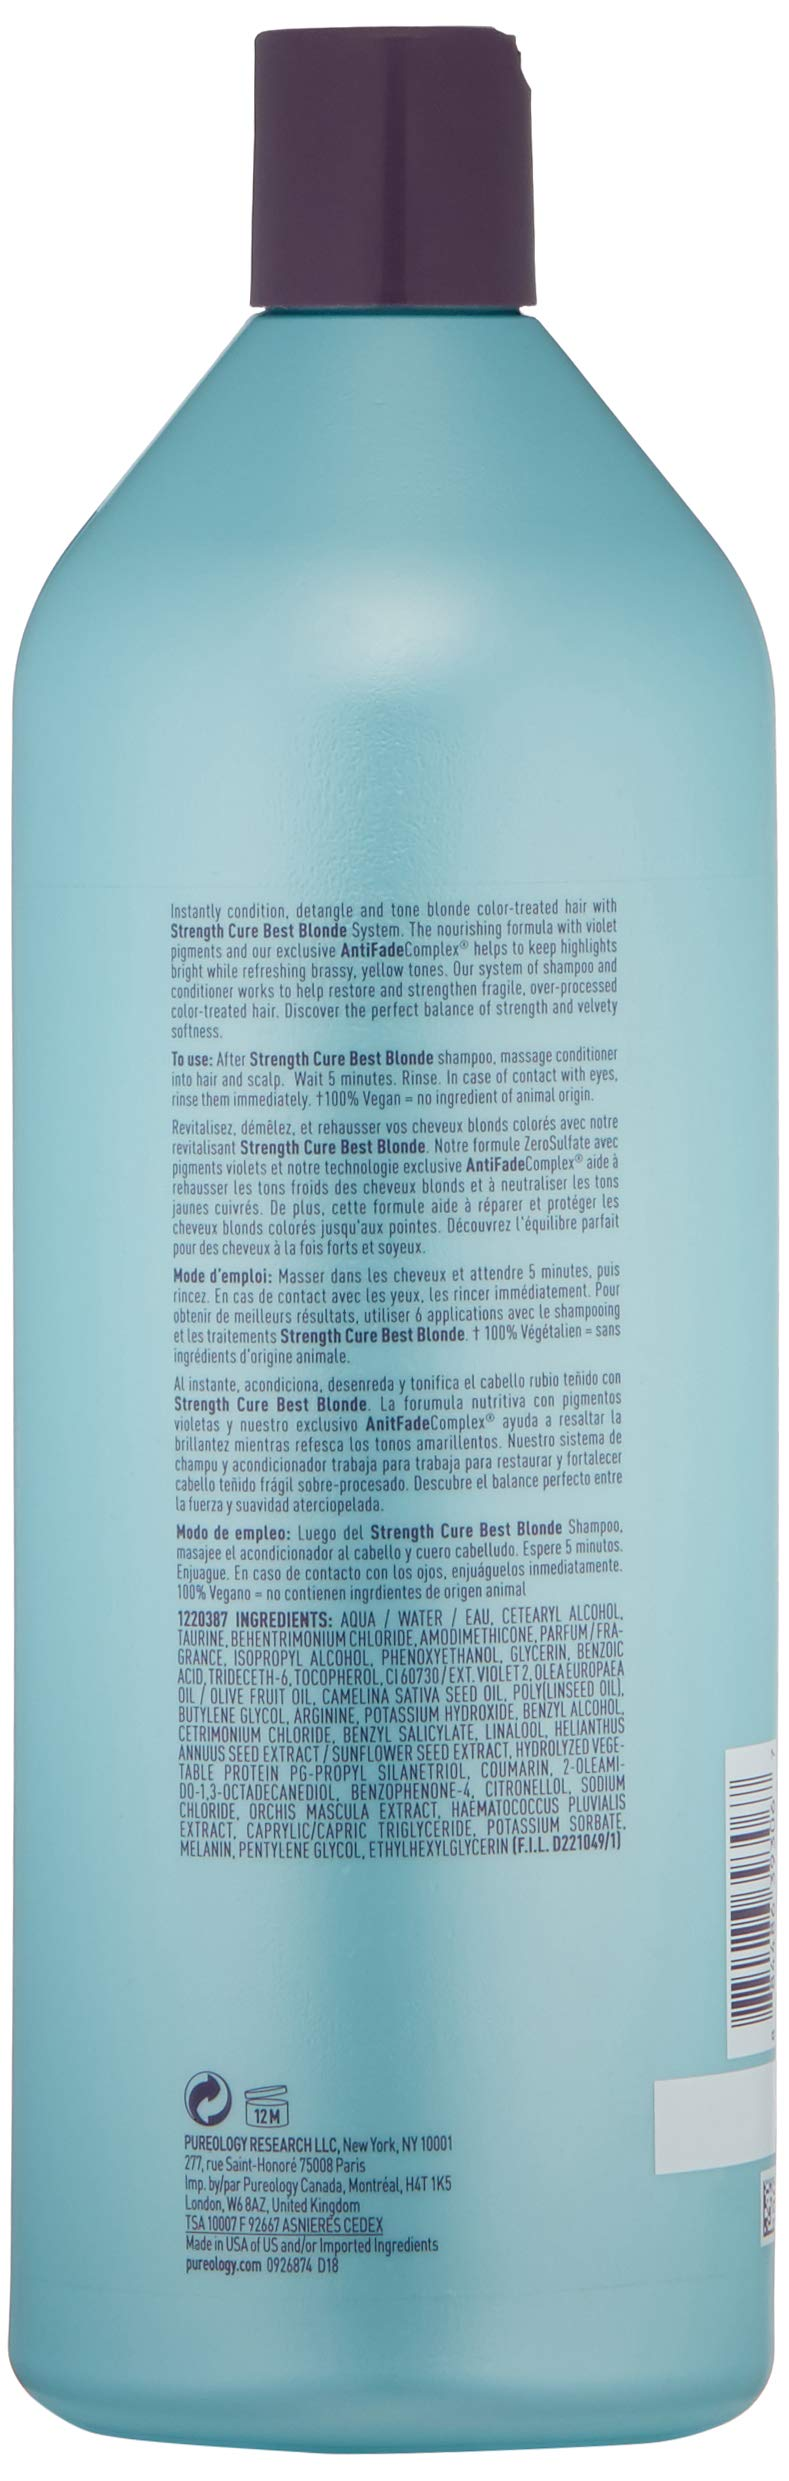 Pureology Strength Cure Best Blonde Purple Conditioner, 33.8 fl. oz. by Pureology (Image #2)